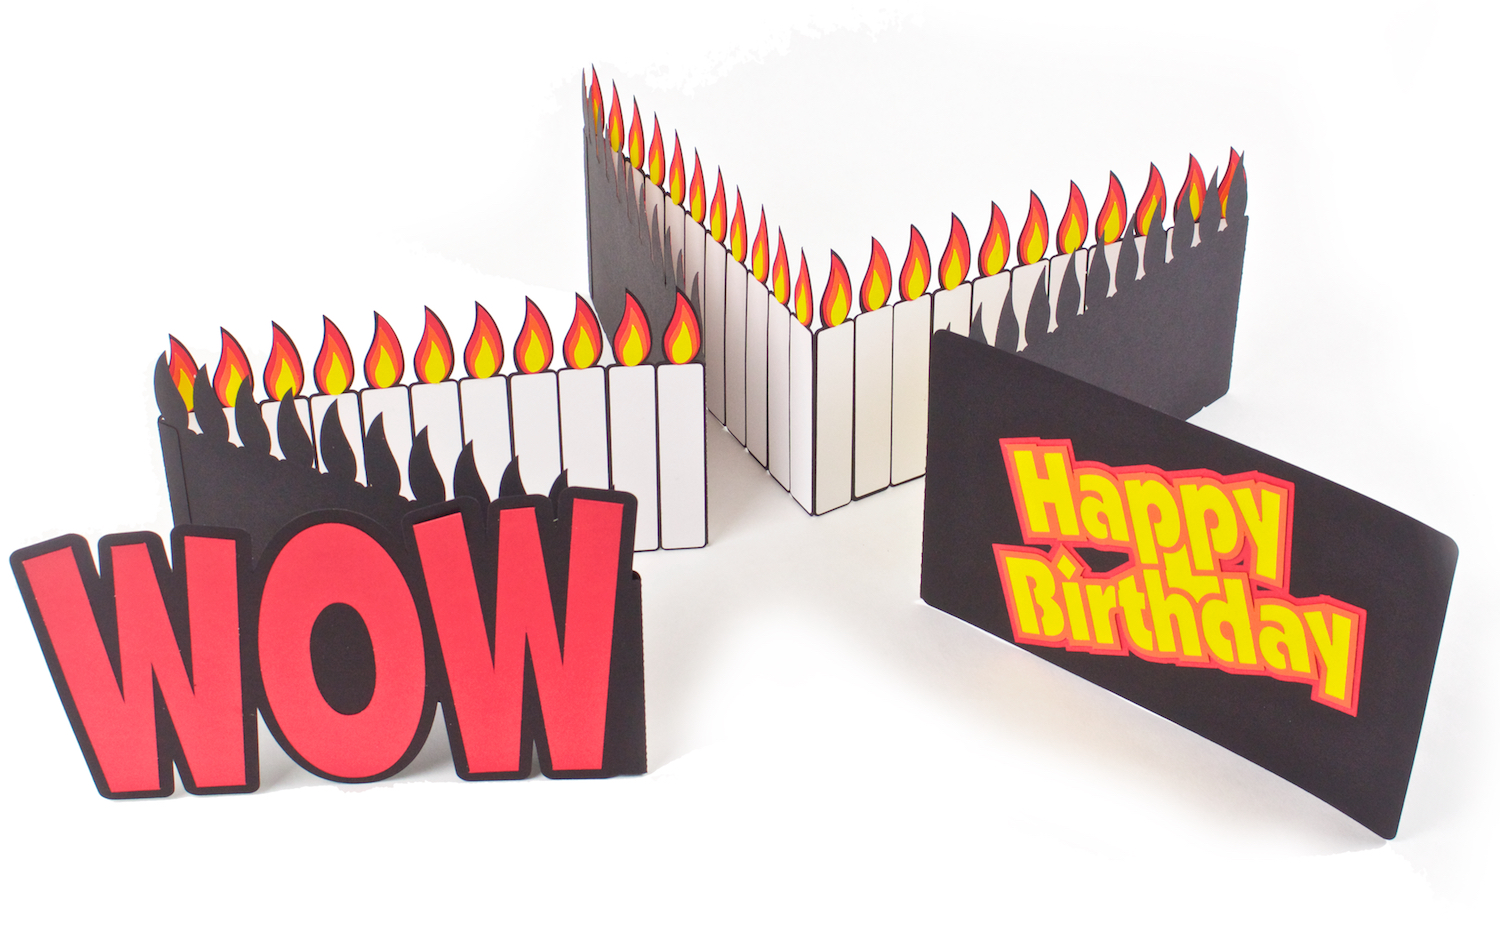 WOW Birthday Card by 3DCuts.com, Marji Roy, 3D cutting files in .svg, .dxf, and .pdf formats for use with Silhouette, Cricut and other cutting machines, paper crafting files